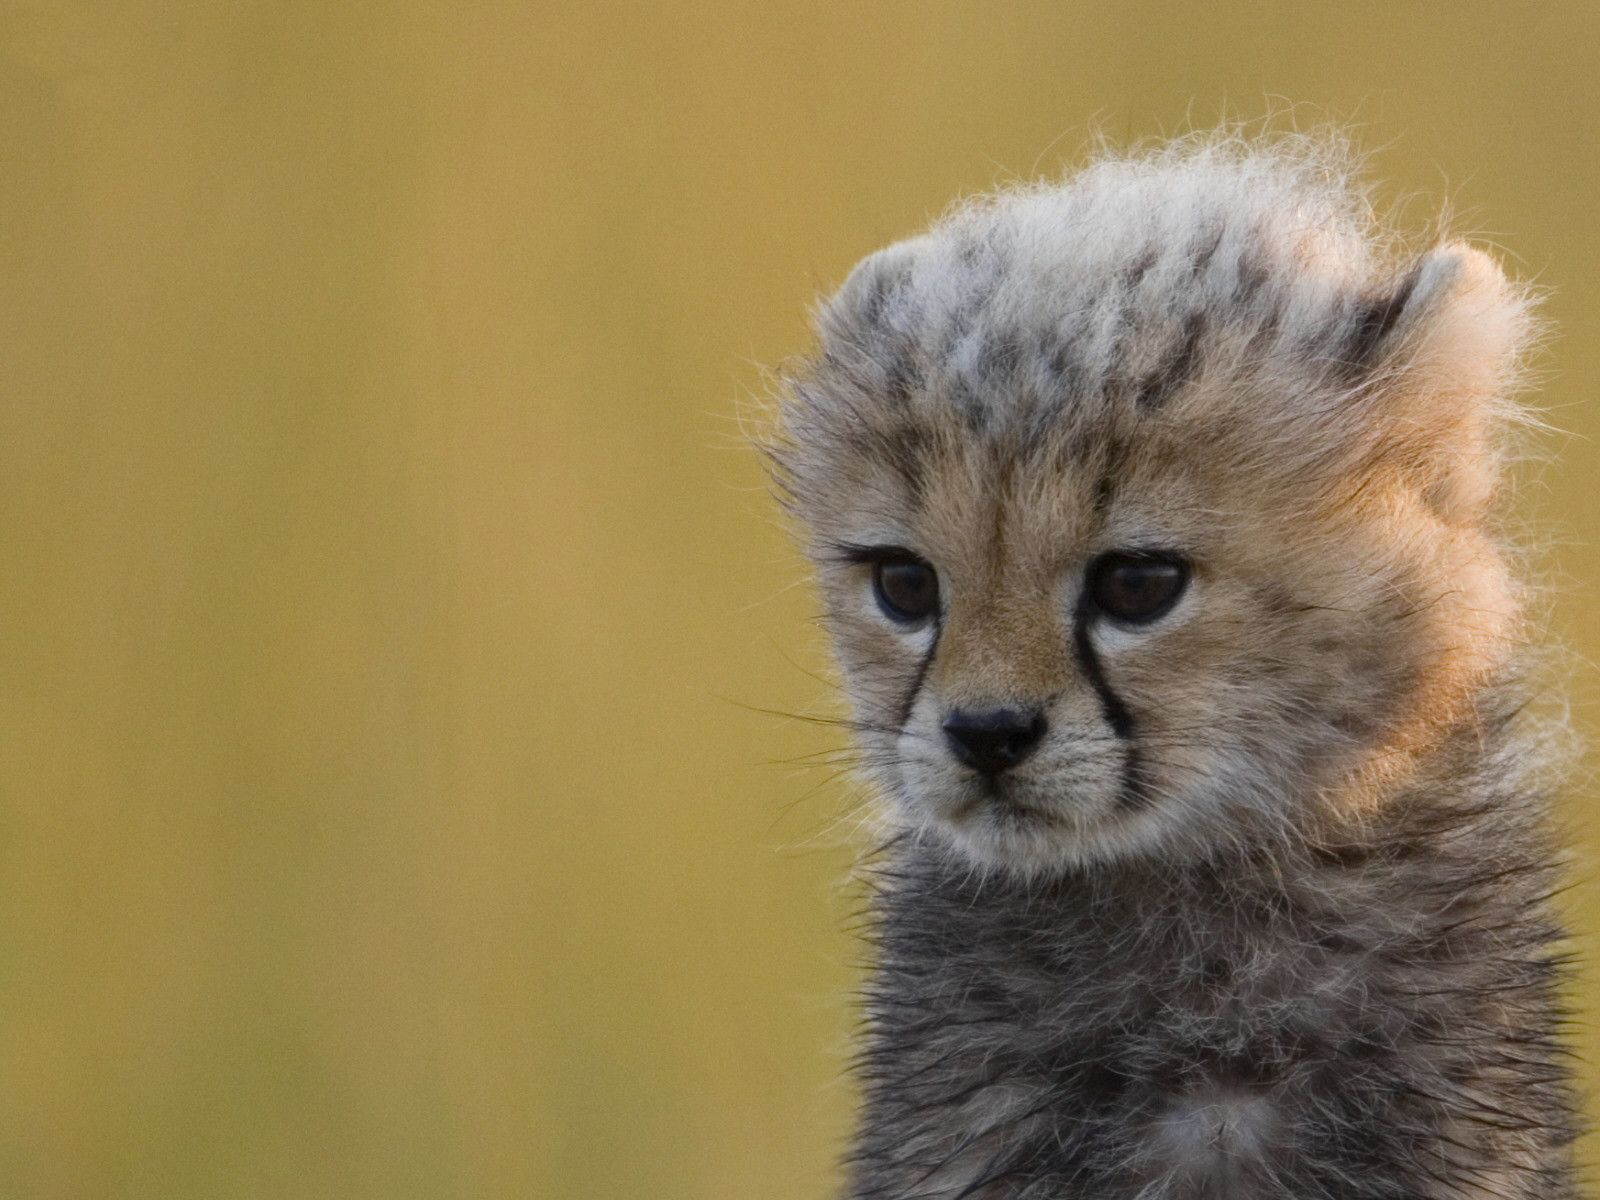 Cute Cheetah Baby animals pictures, Cute baby animals